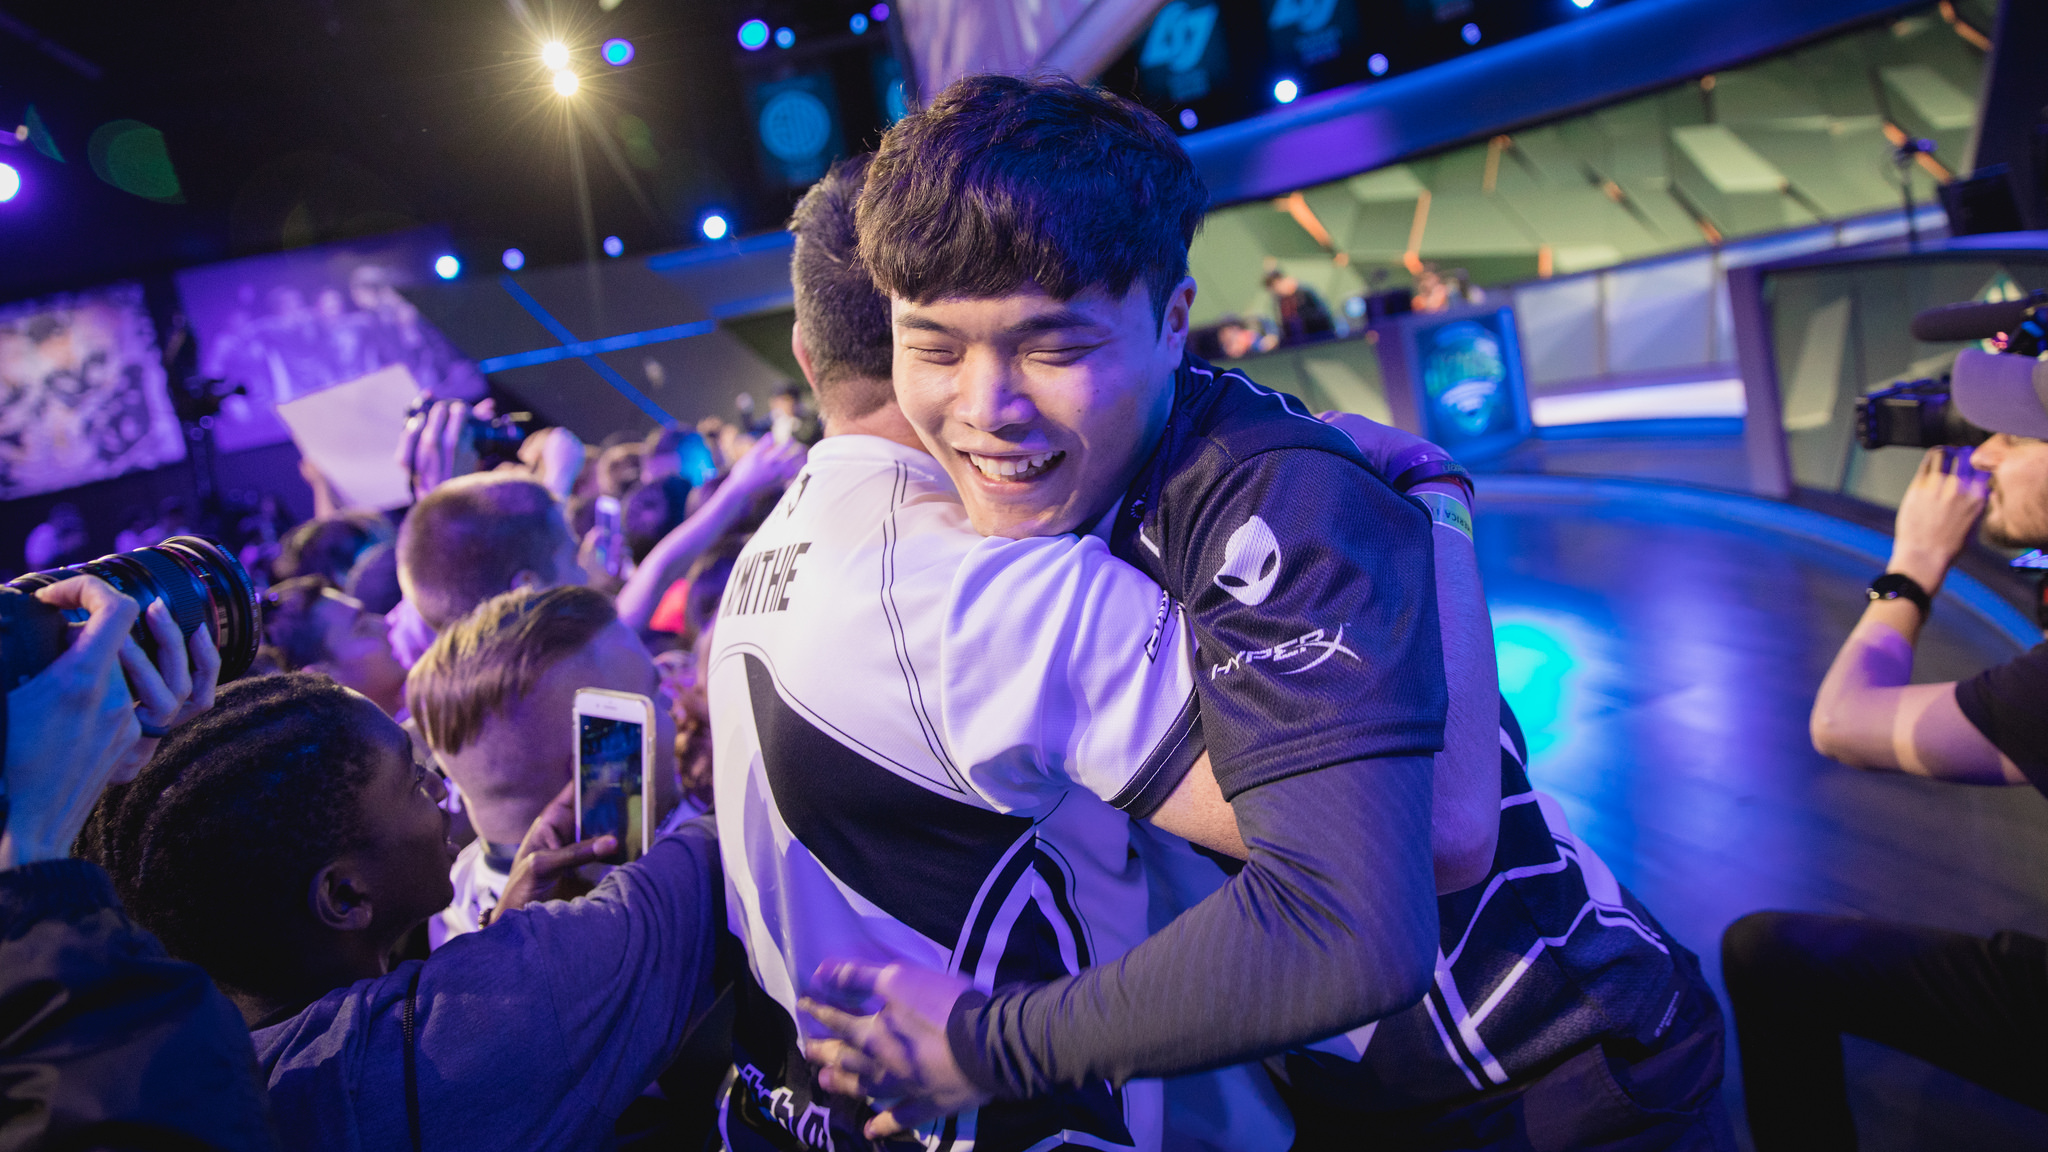 best service 31d57 1c989 Team Liquid qualify for their first NA LCS final after a crushing victory  over Echo Fox